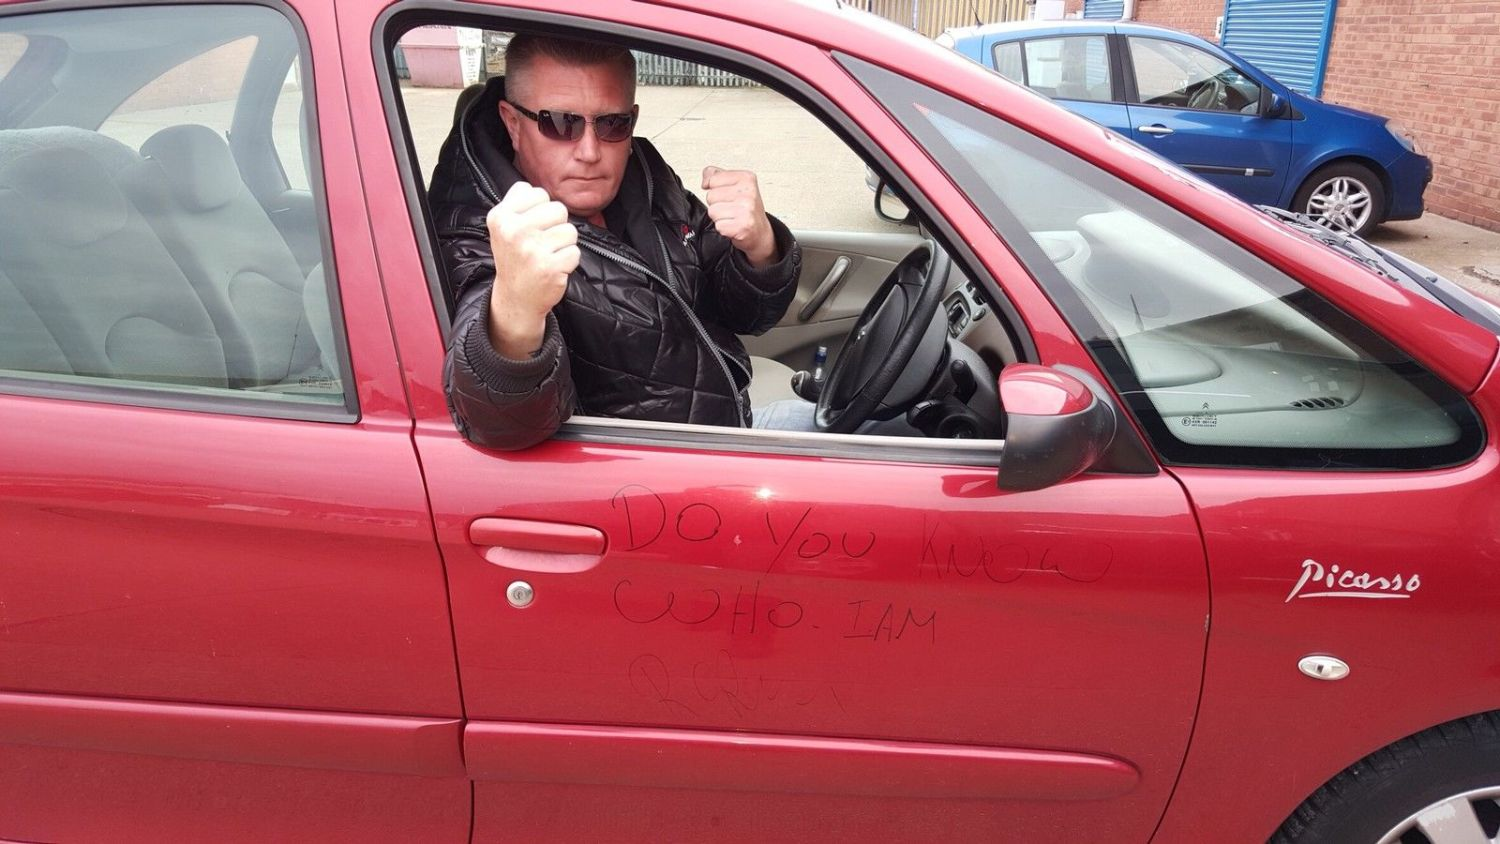 Do you know what this is? It's Ronnie Pickering's Picasso for sale on eBay